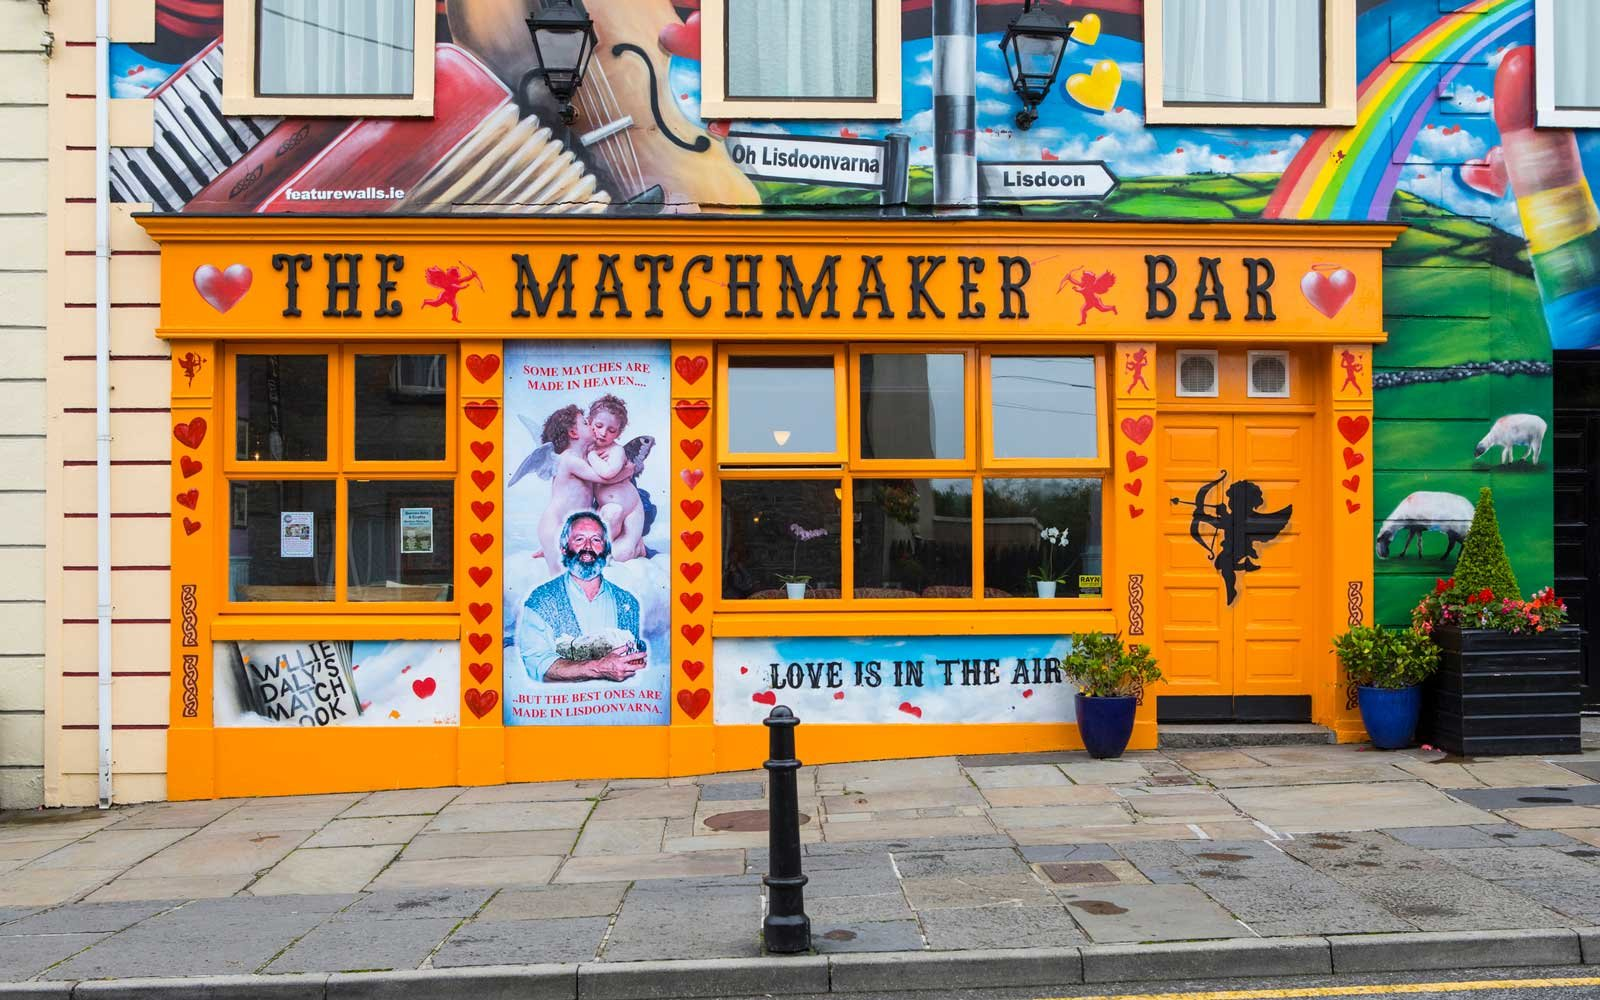 The Matchmaker Bar in Lisdoonvarna, Republic of Ireland